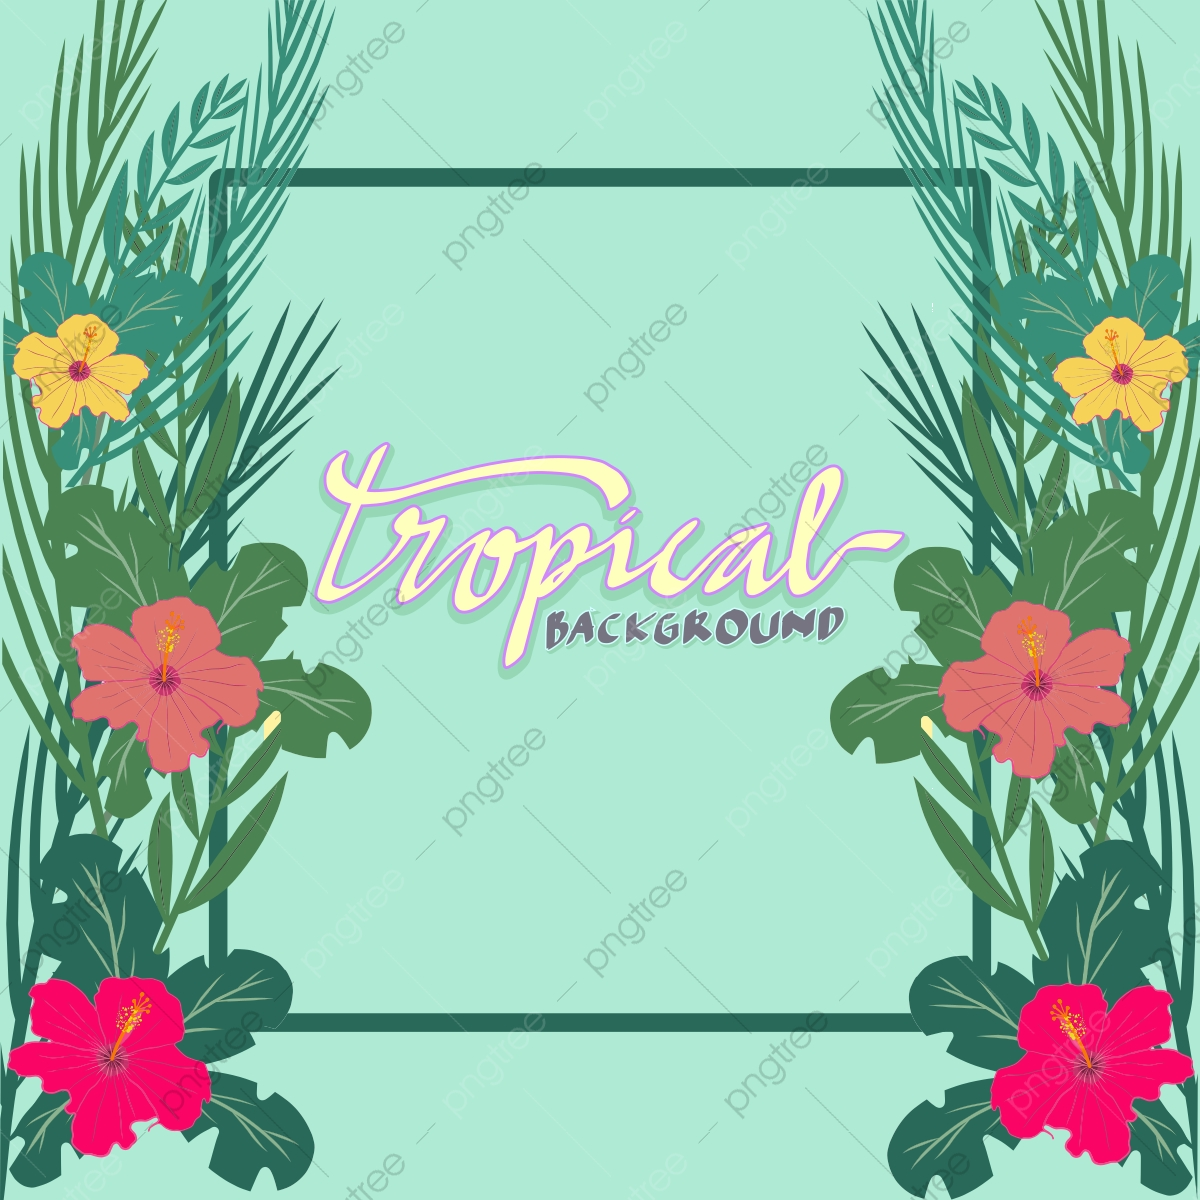 Tropical Frame Leaves With Flowers Background Nature Theme Tropical Leaves Flowers Png And Vector With Transparent Background For Free Download Download and share awesome cool background hd mobile phone wallpapers. https pngtree com freepng tropical frame leaves with flowers background nature theme 5386694 html